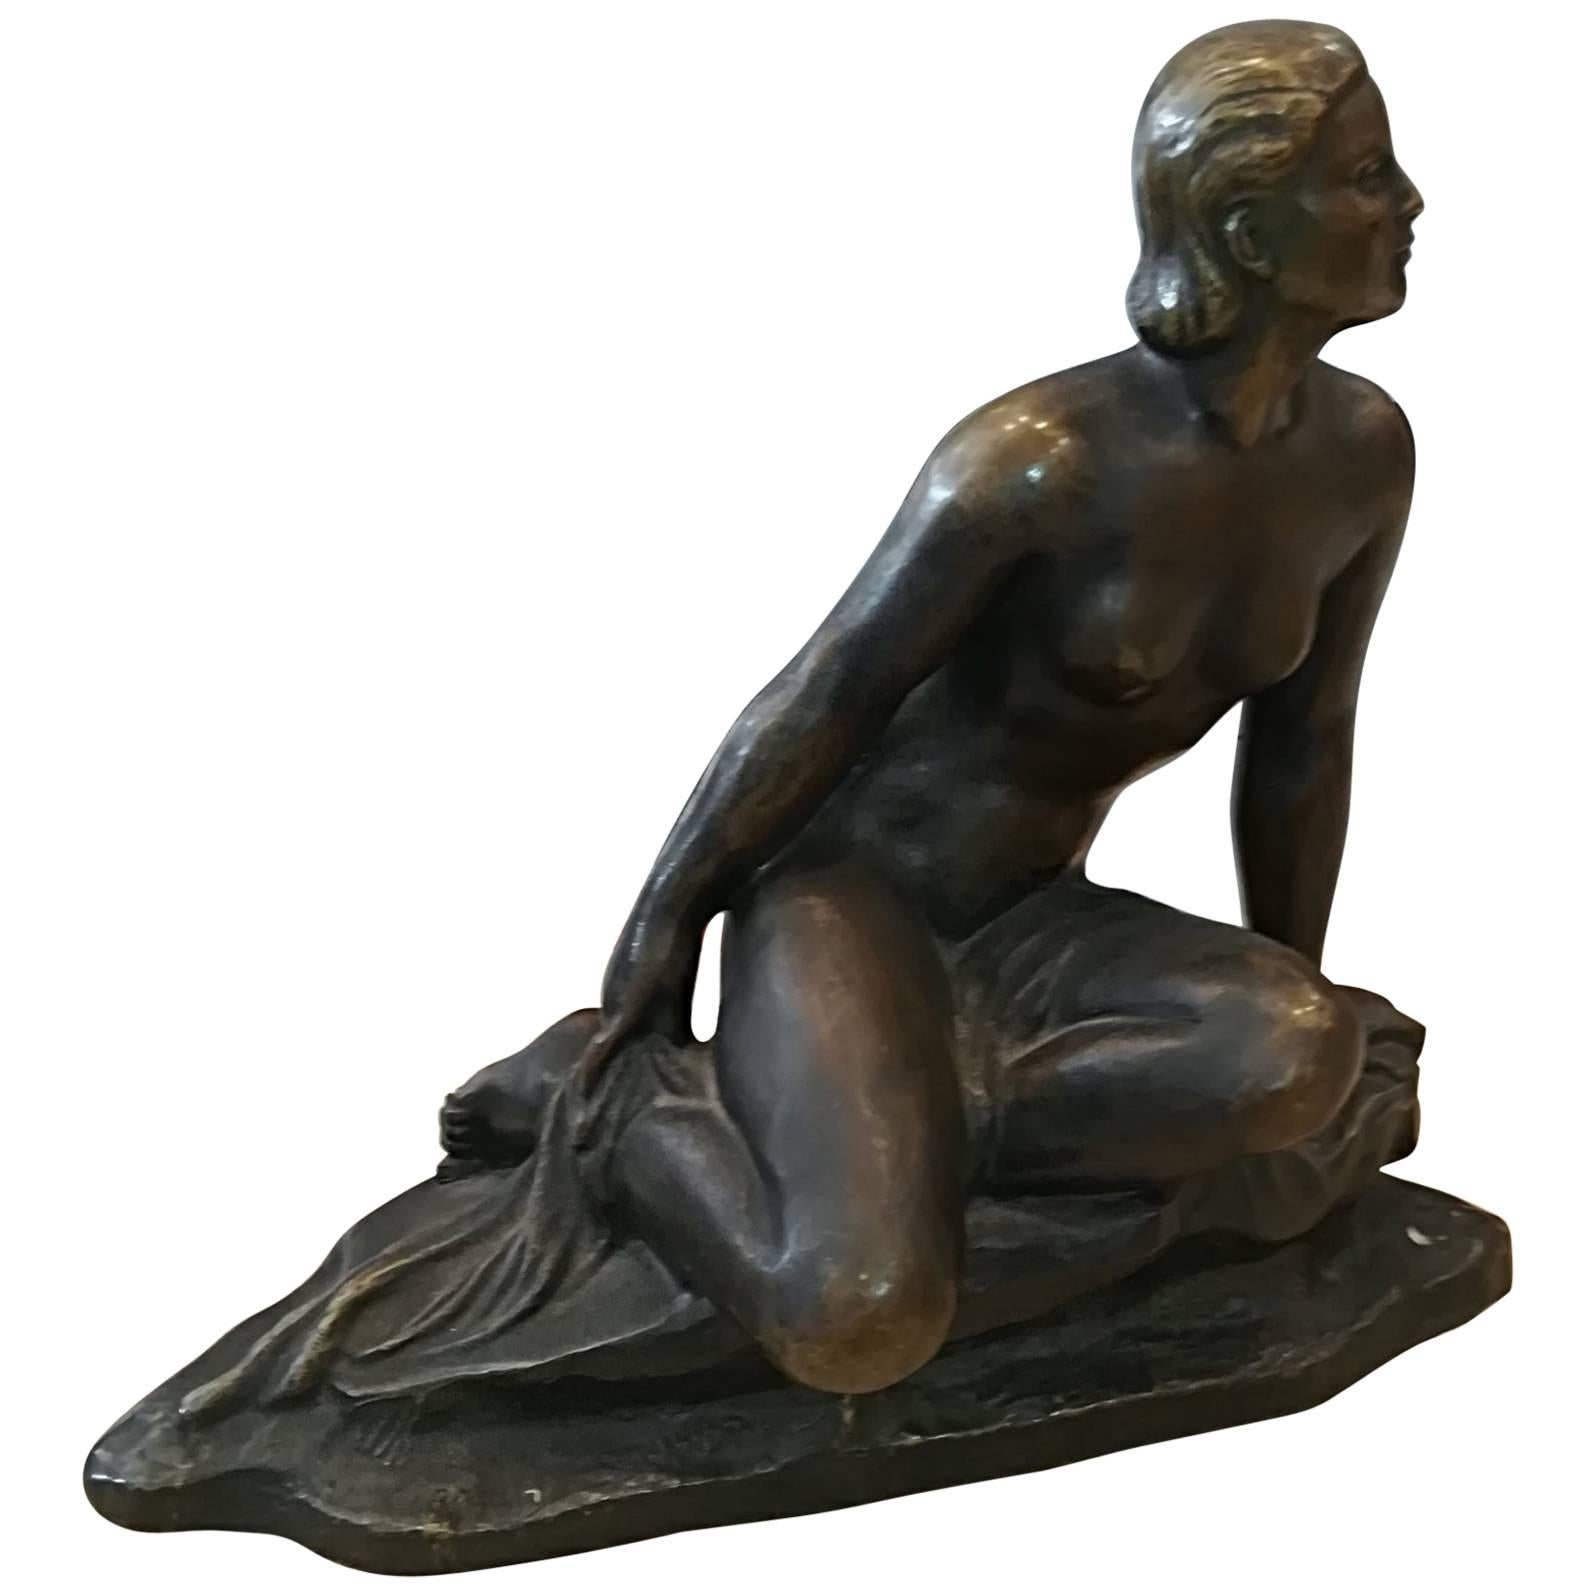 Art Deco Ugo Cipriani Bronze Sculpture, circa 1930